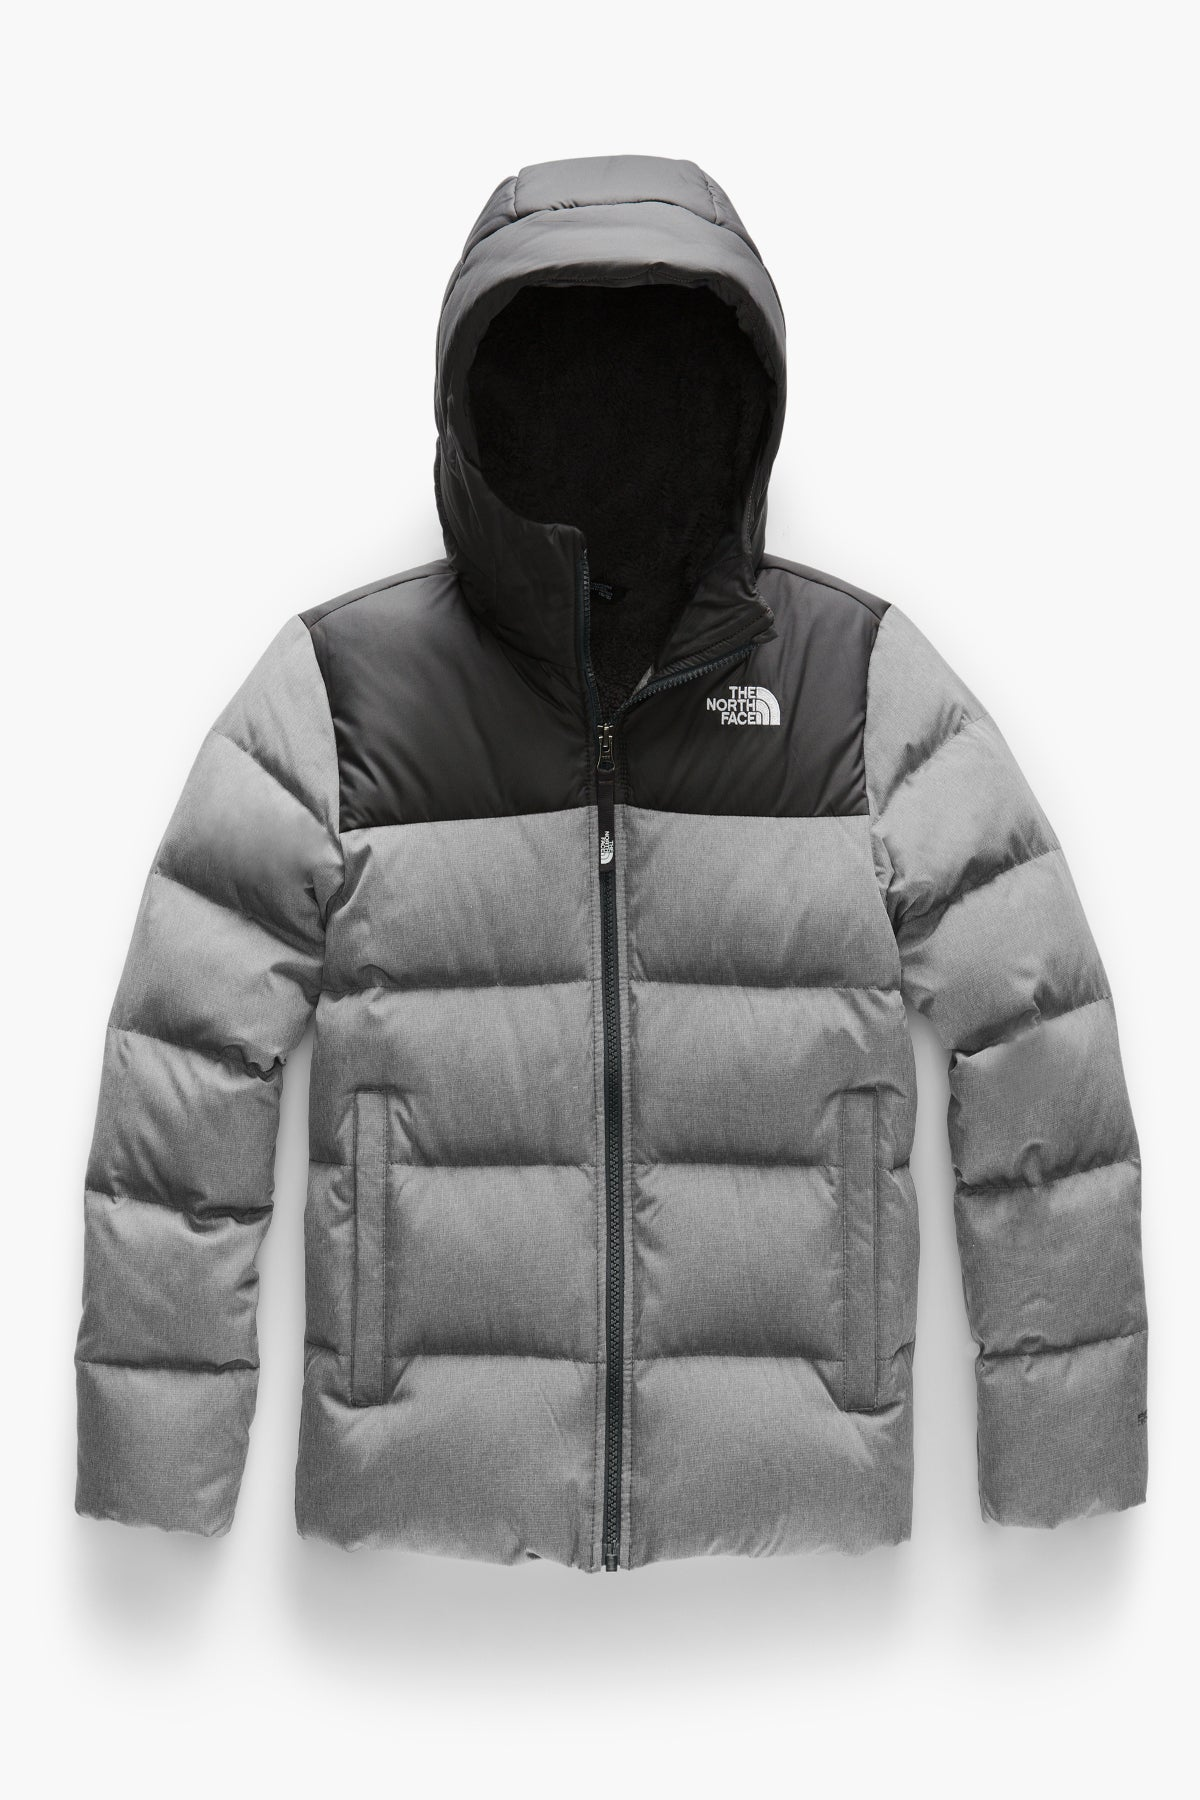 The North Face Boys Moondoggy 2.0 Down Hoodie